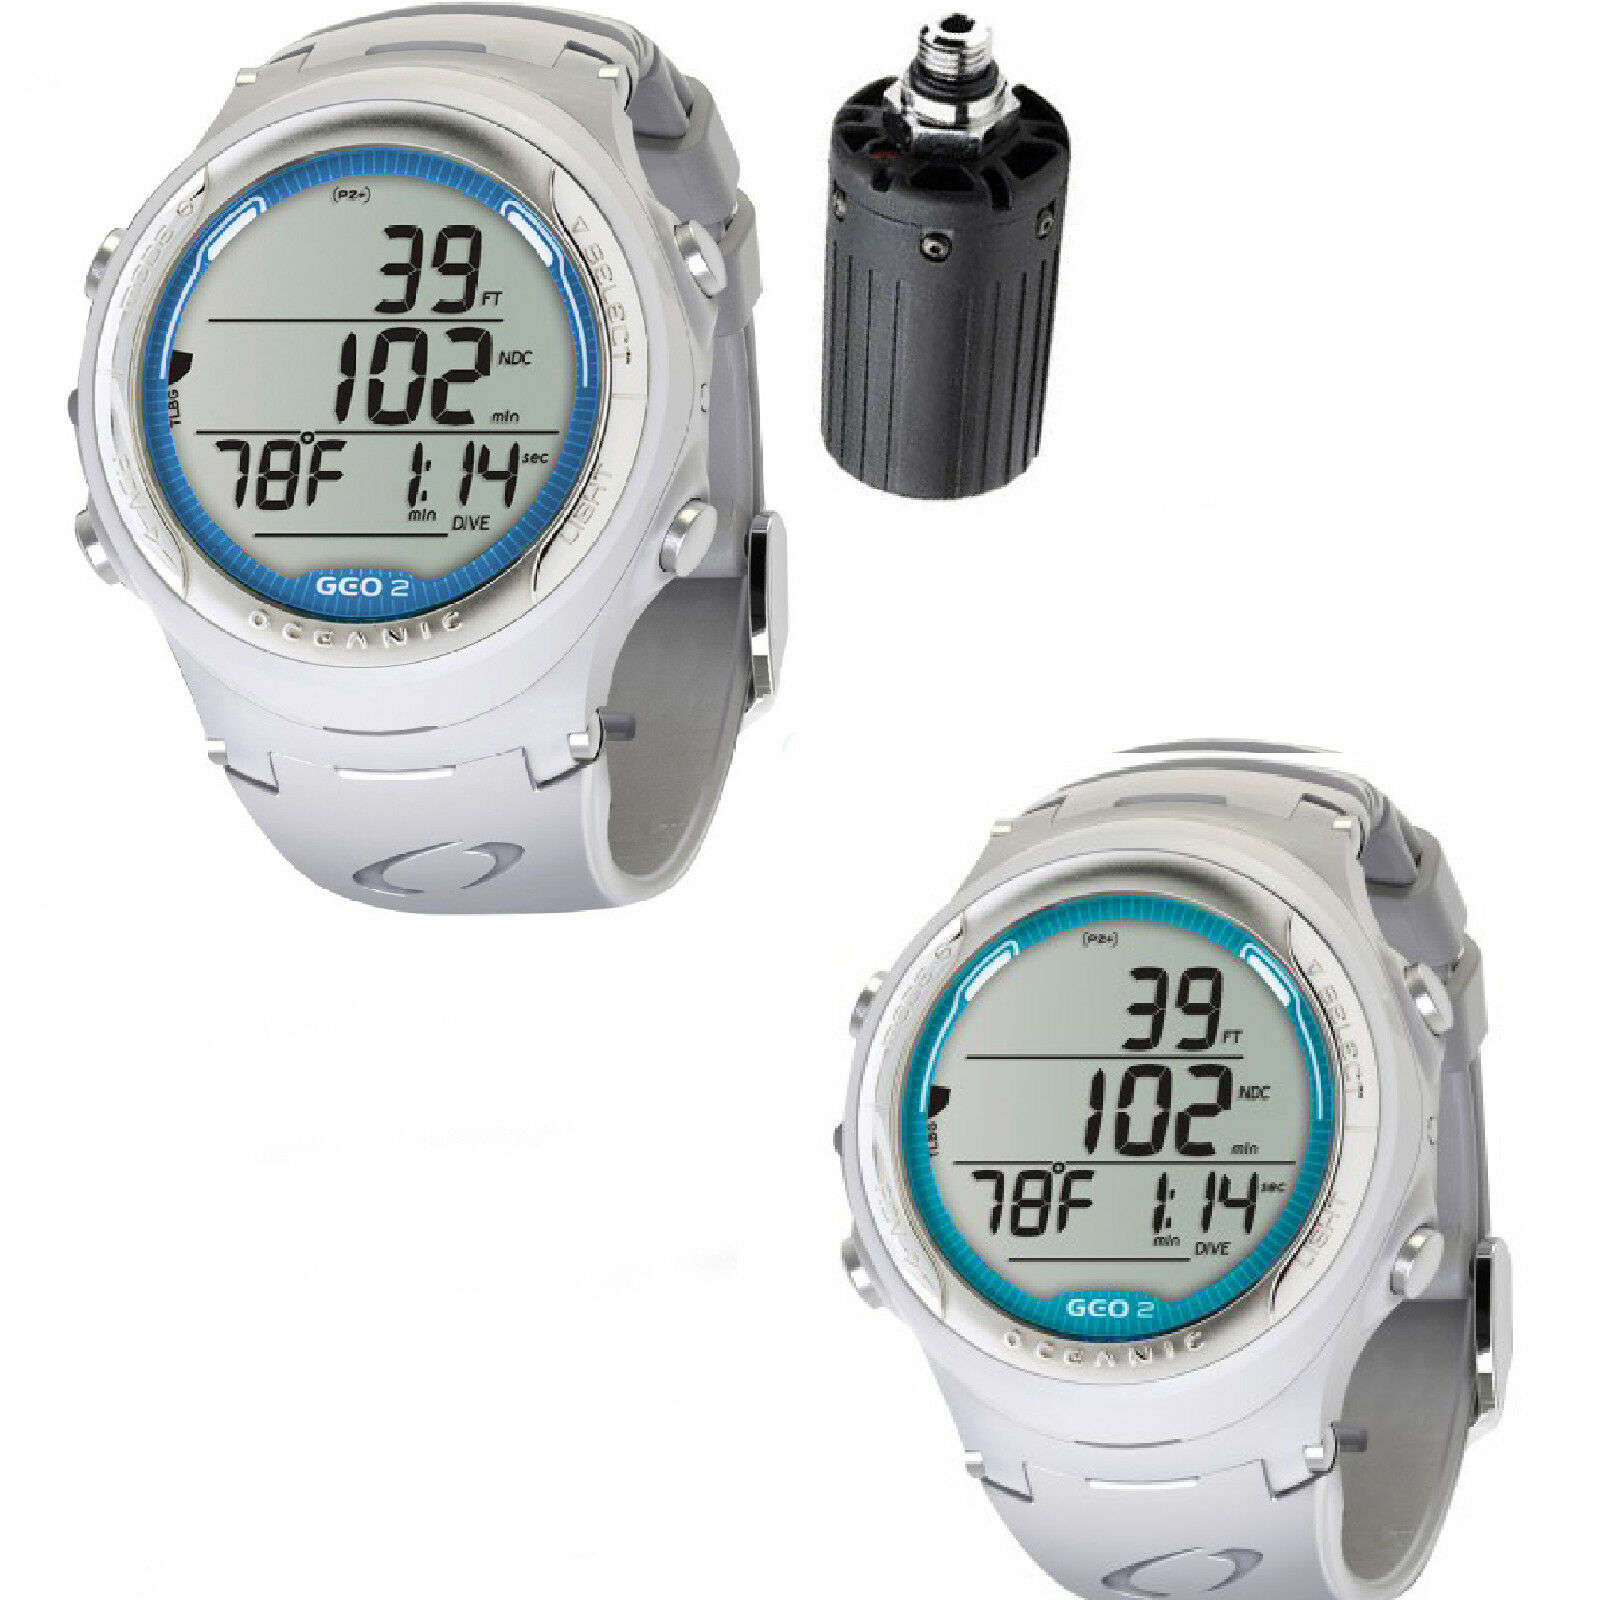 Lo3 Oceanic dive computer  one piece OCi + TRANSMITTER   one piece GEO 2.0 WHITE